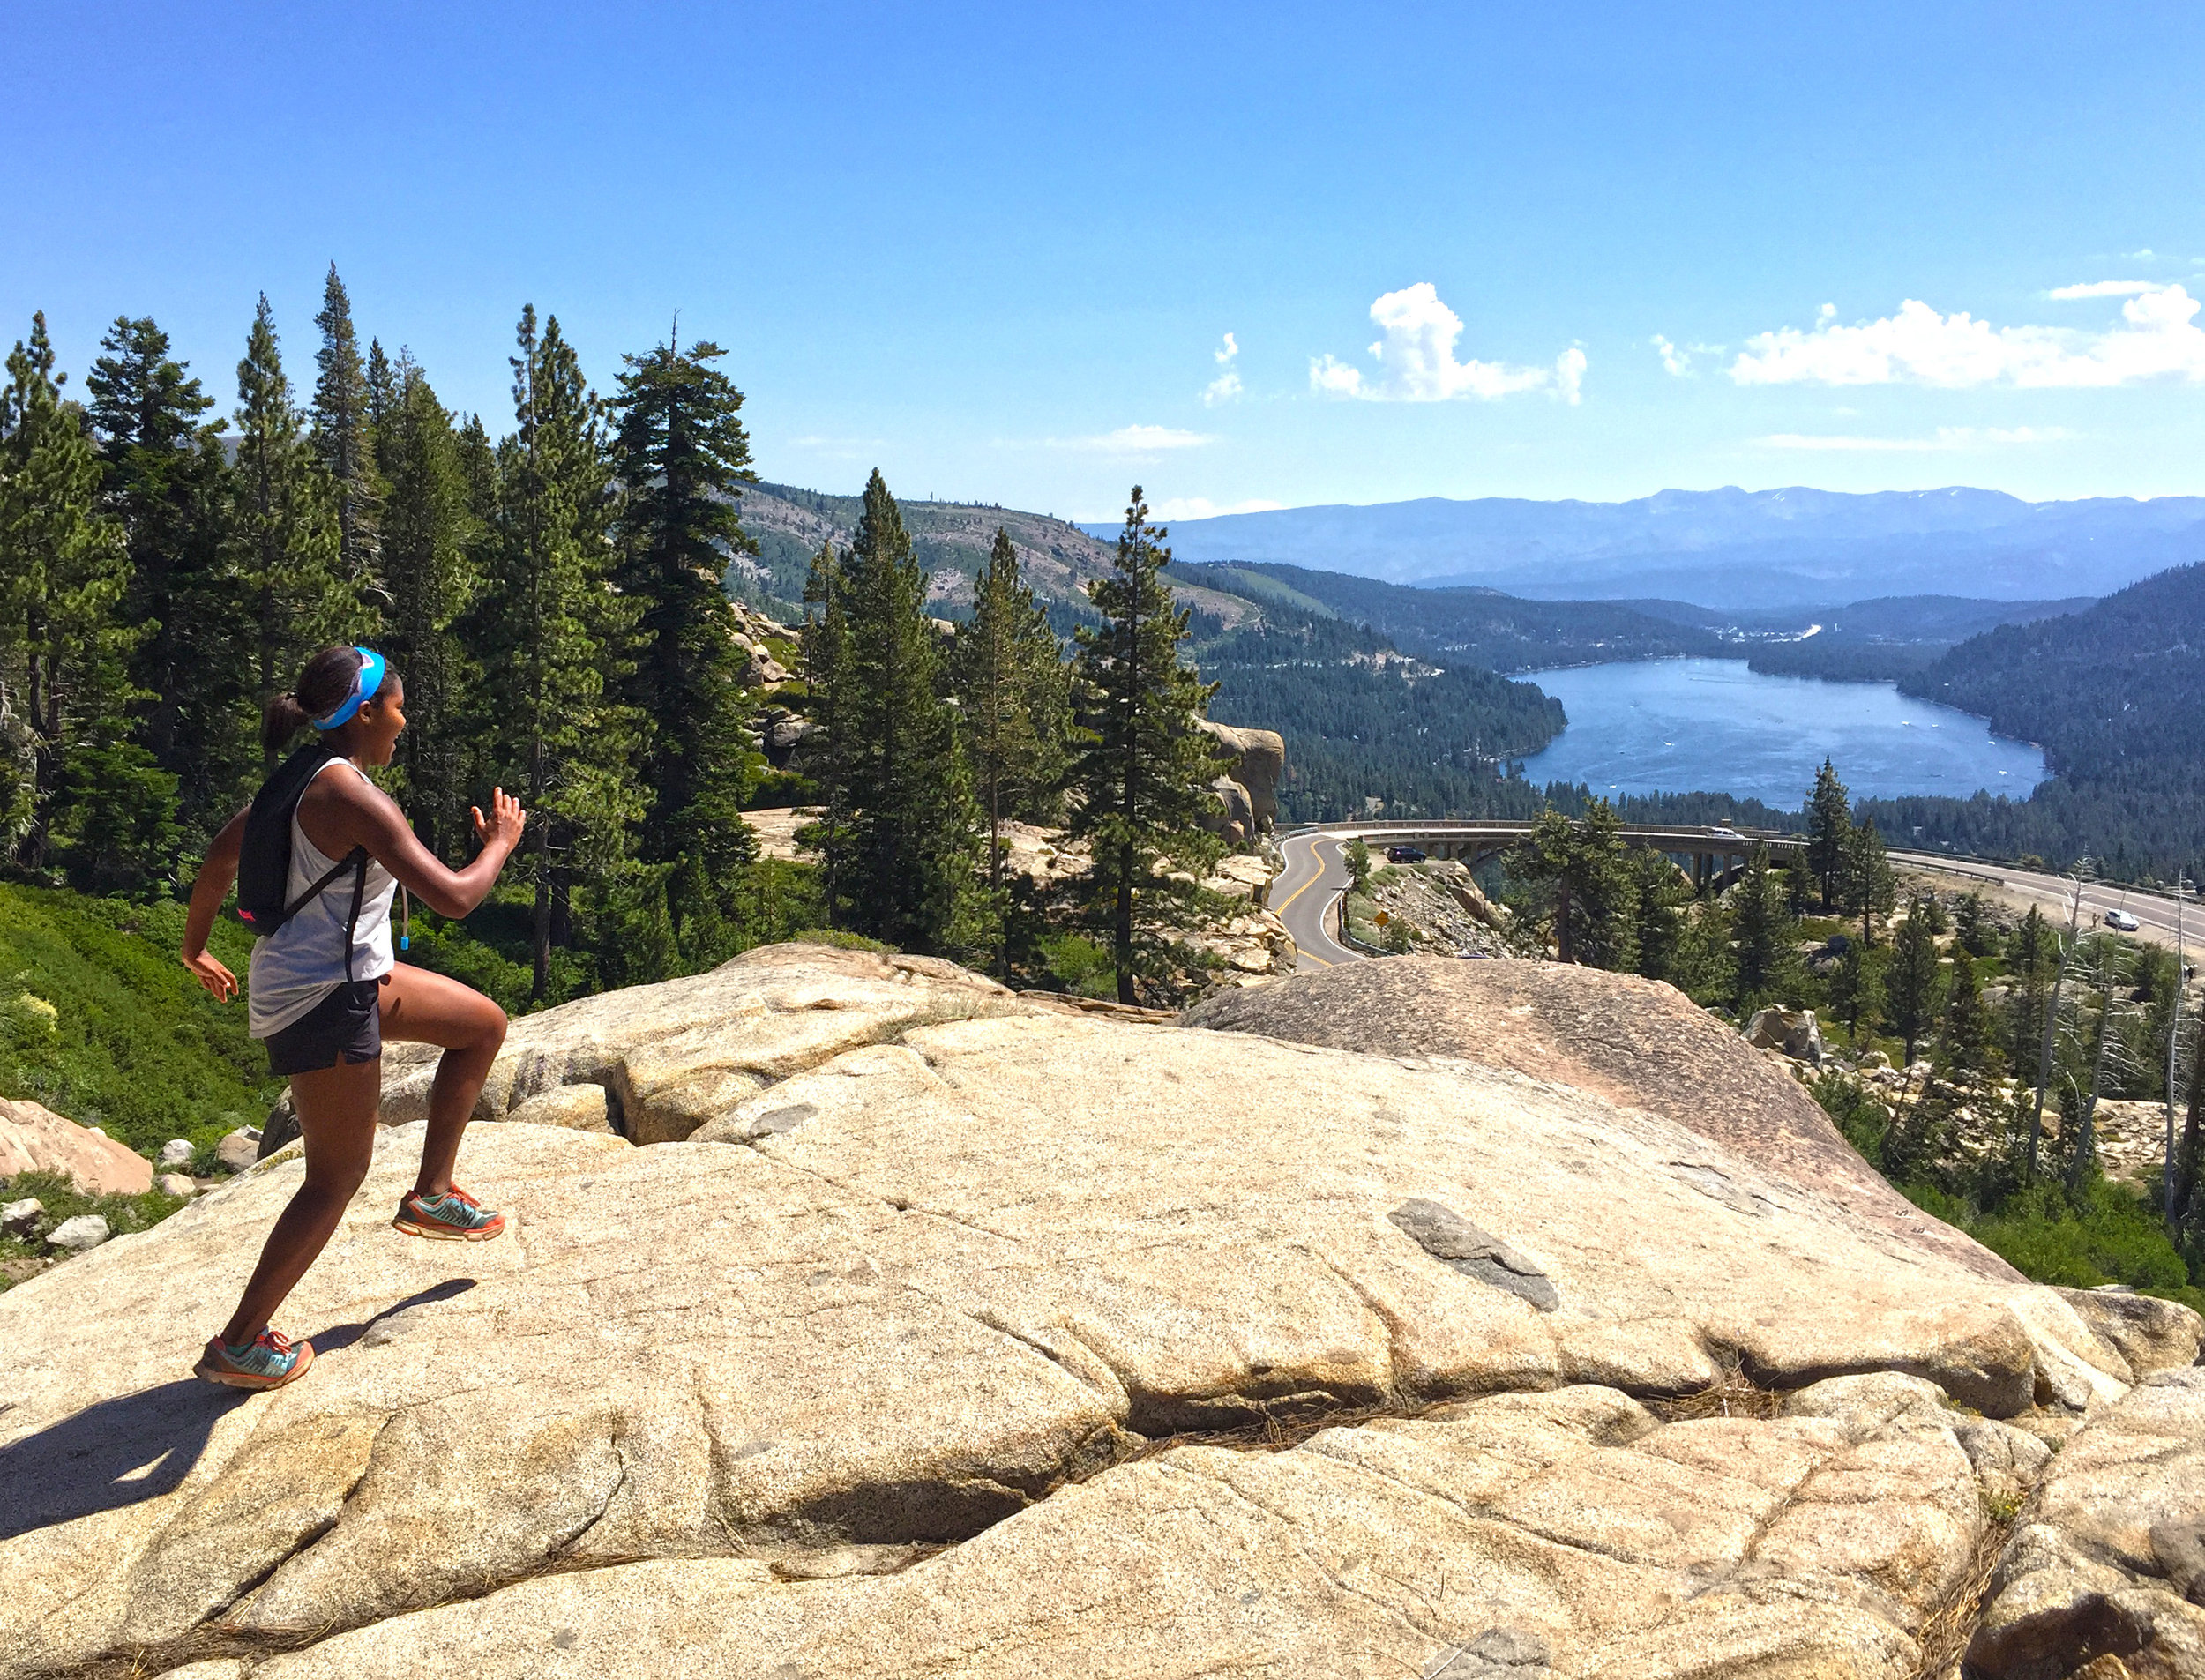 A great example of a NET downhill run in Tahoe!